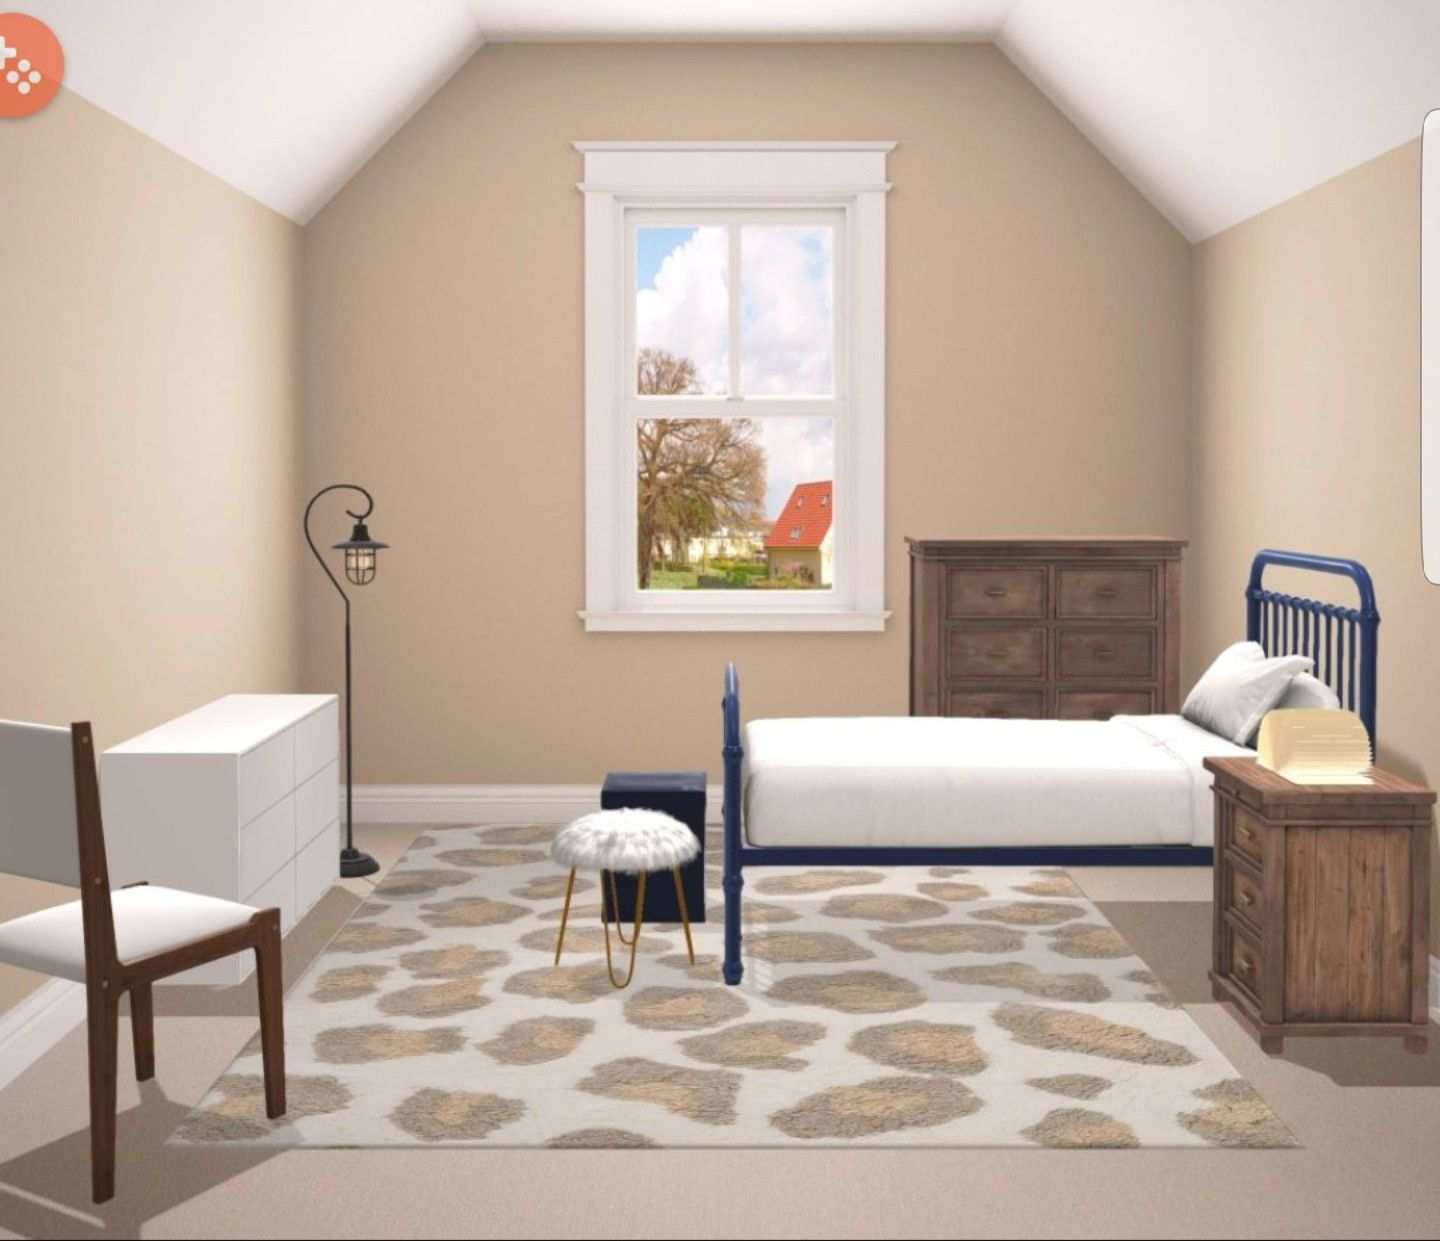 My Project Of Light Kidsroom With Classic Elements Made Via Design Home App  Interiordesignideas Kidsroominterior Also